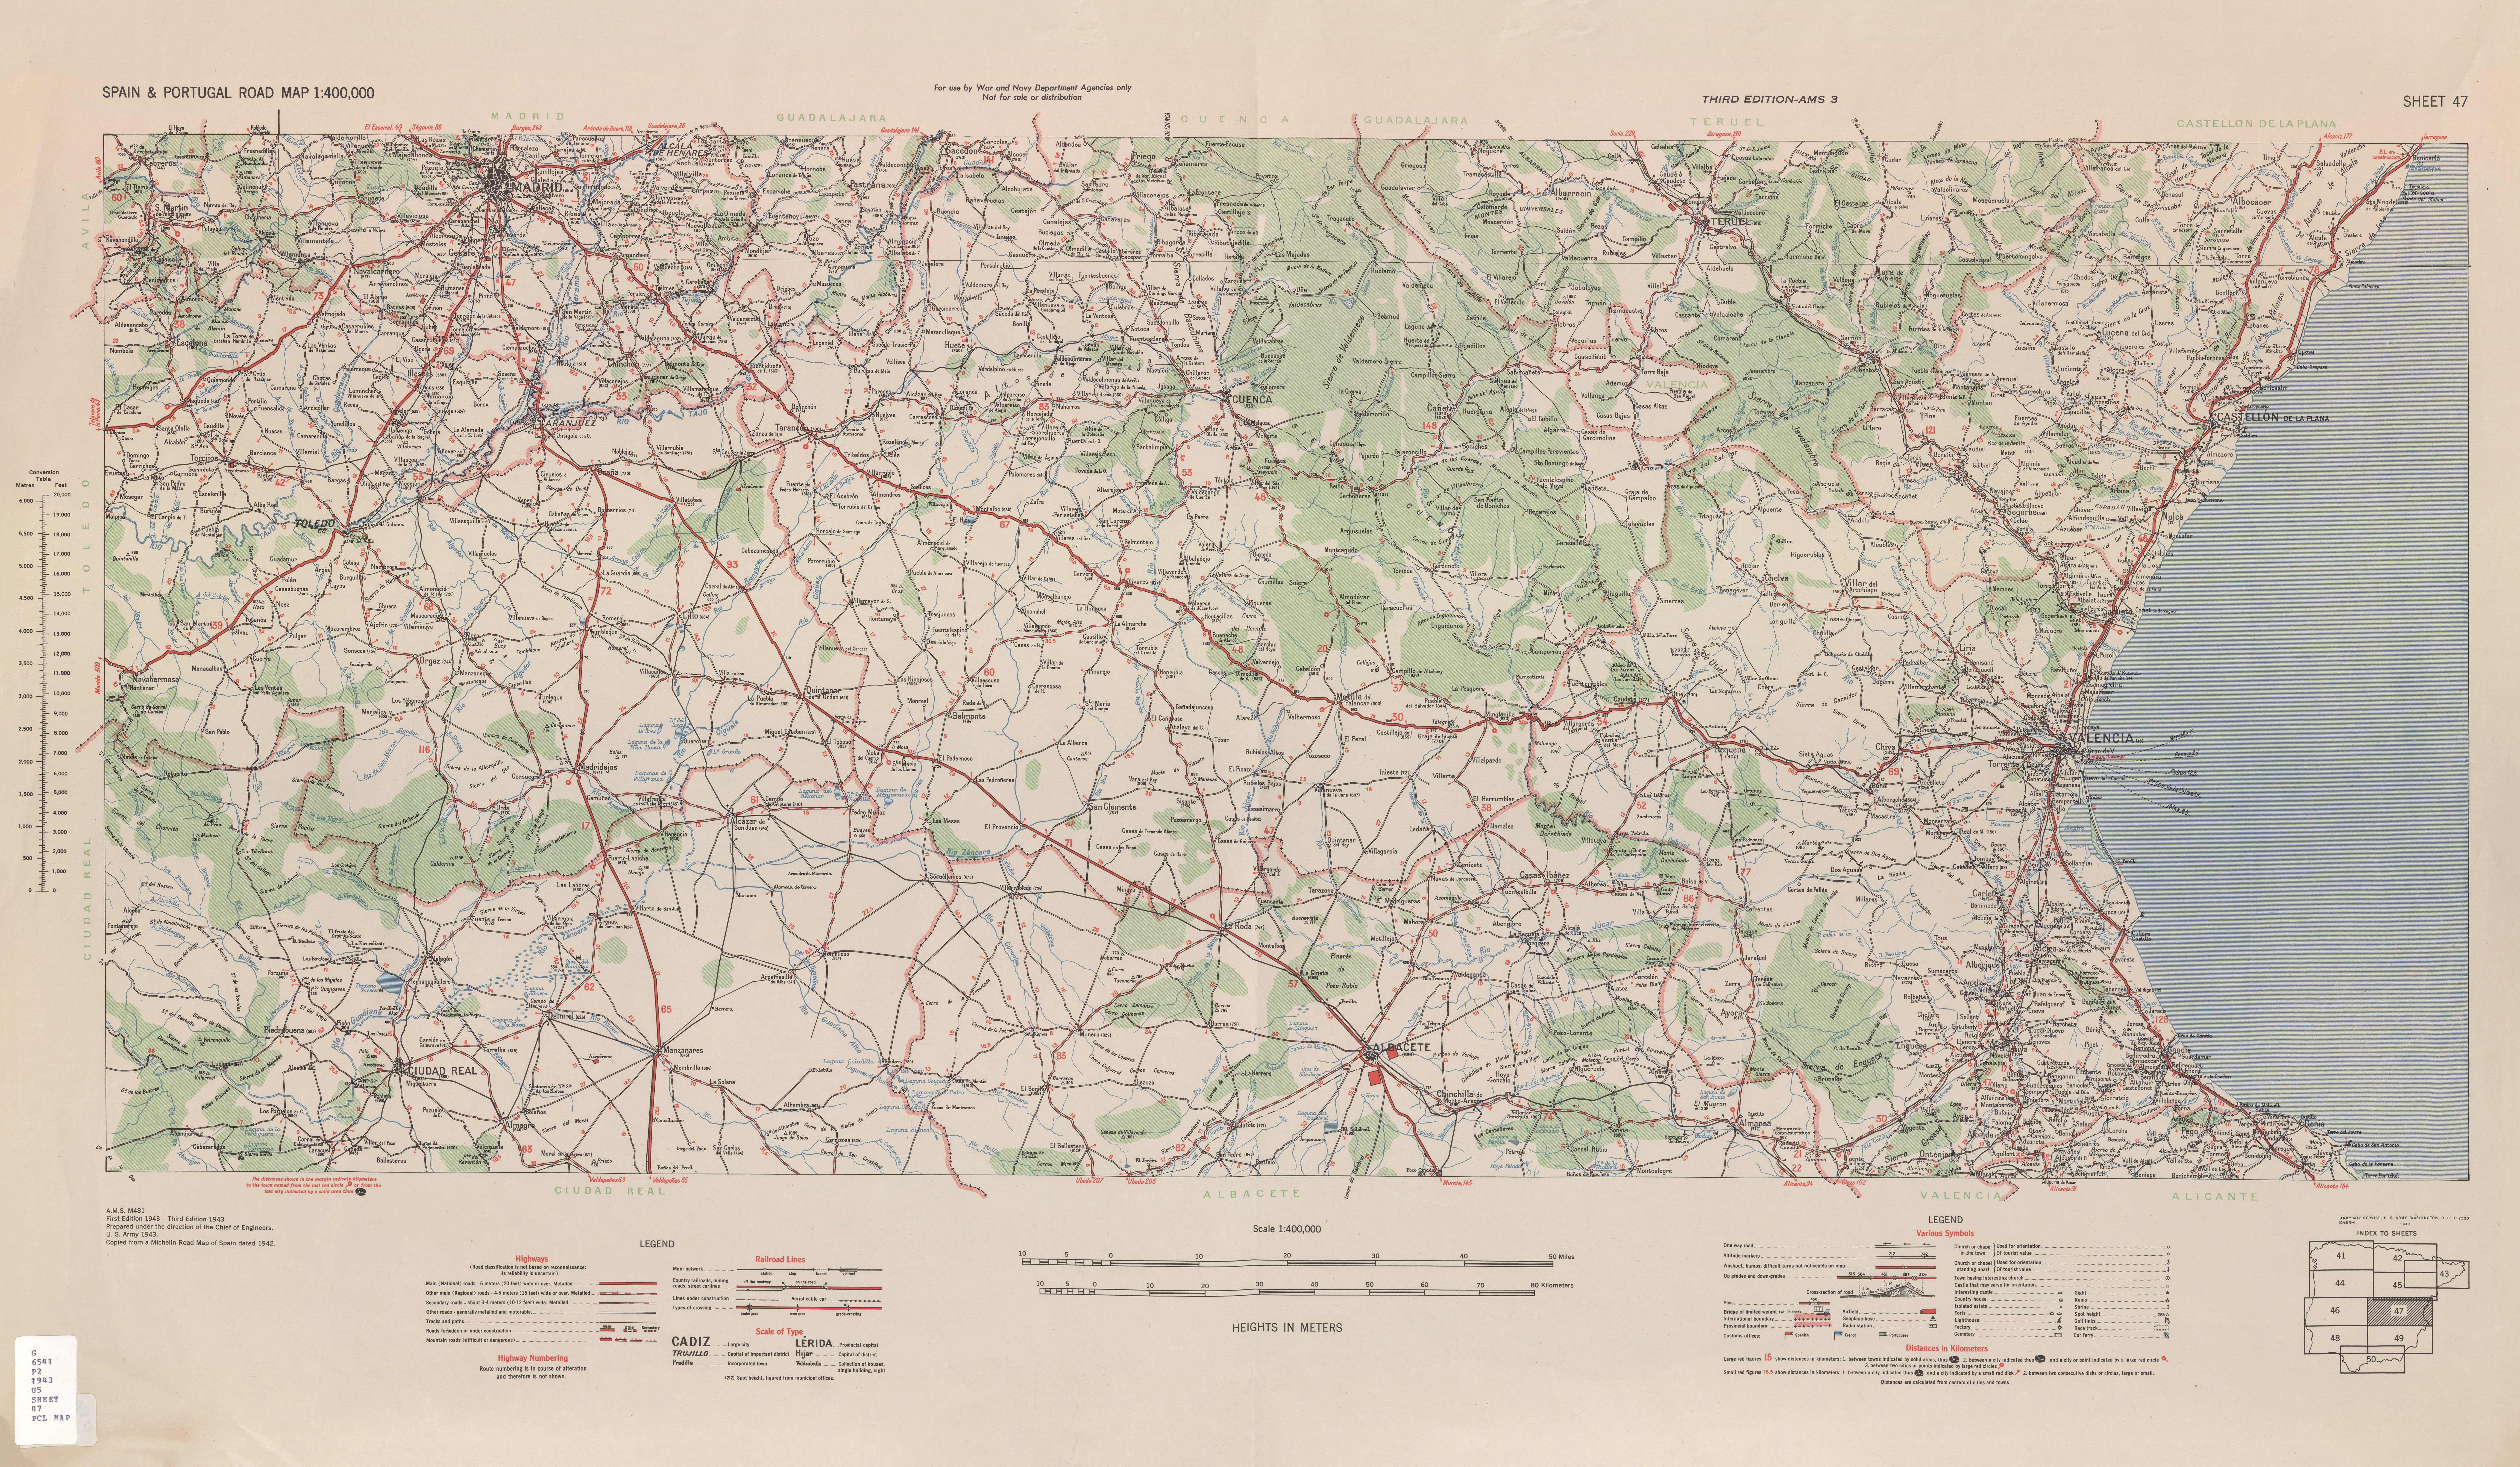 Spain & Portugal Road Map AMS Topographic Maps - Perry-Castañeda ...